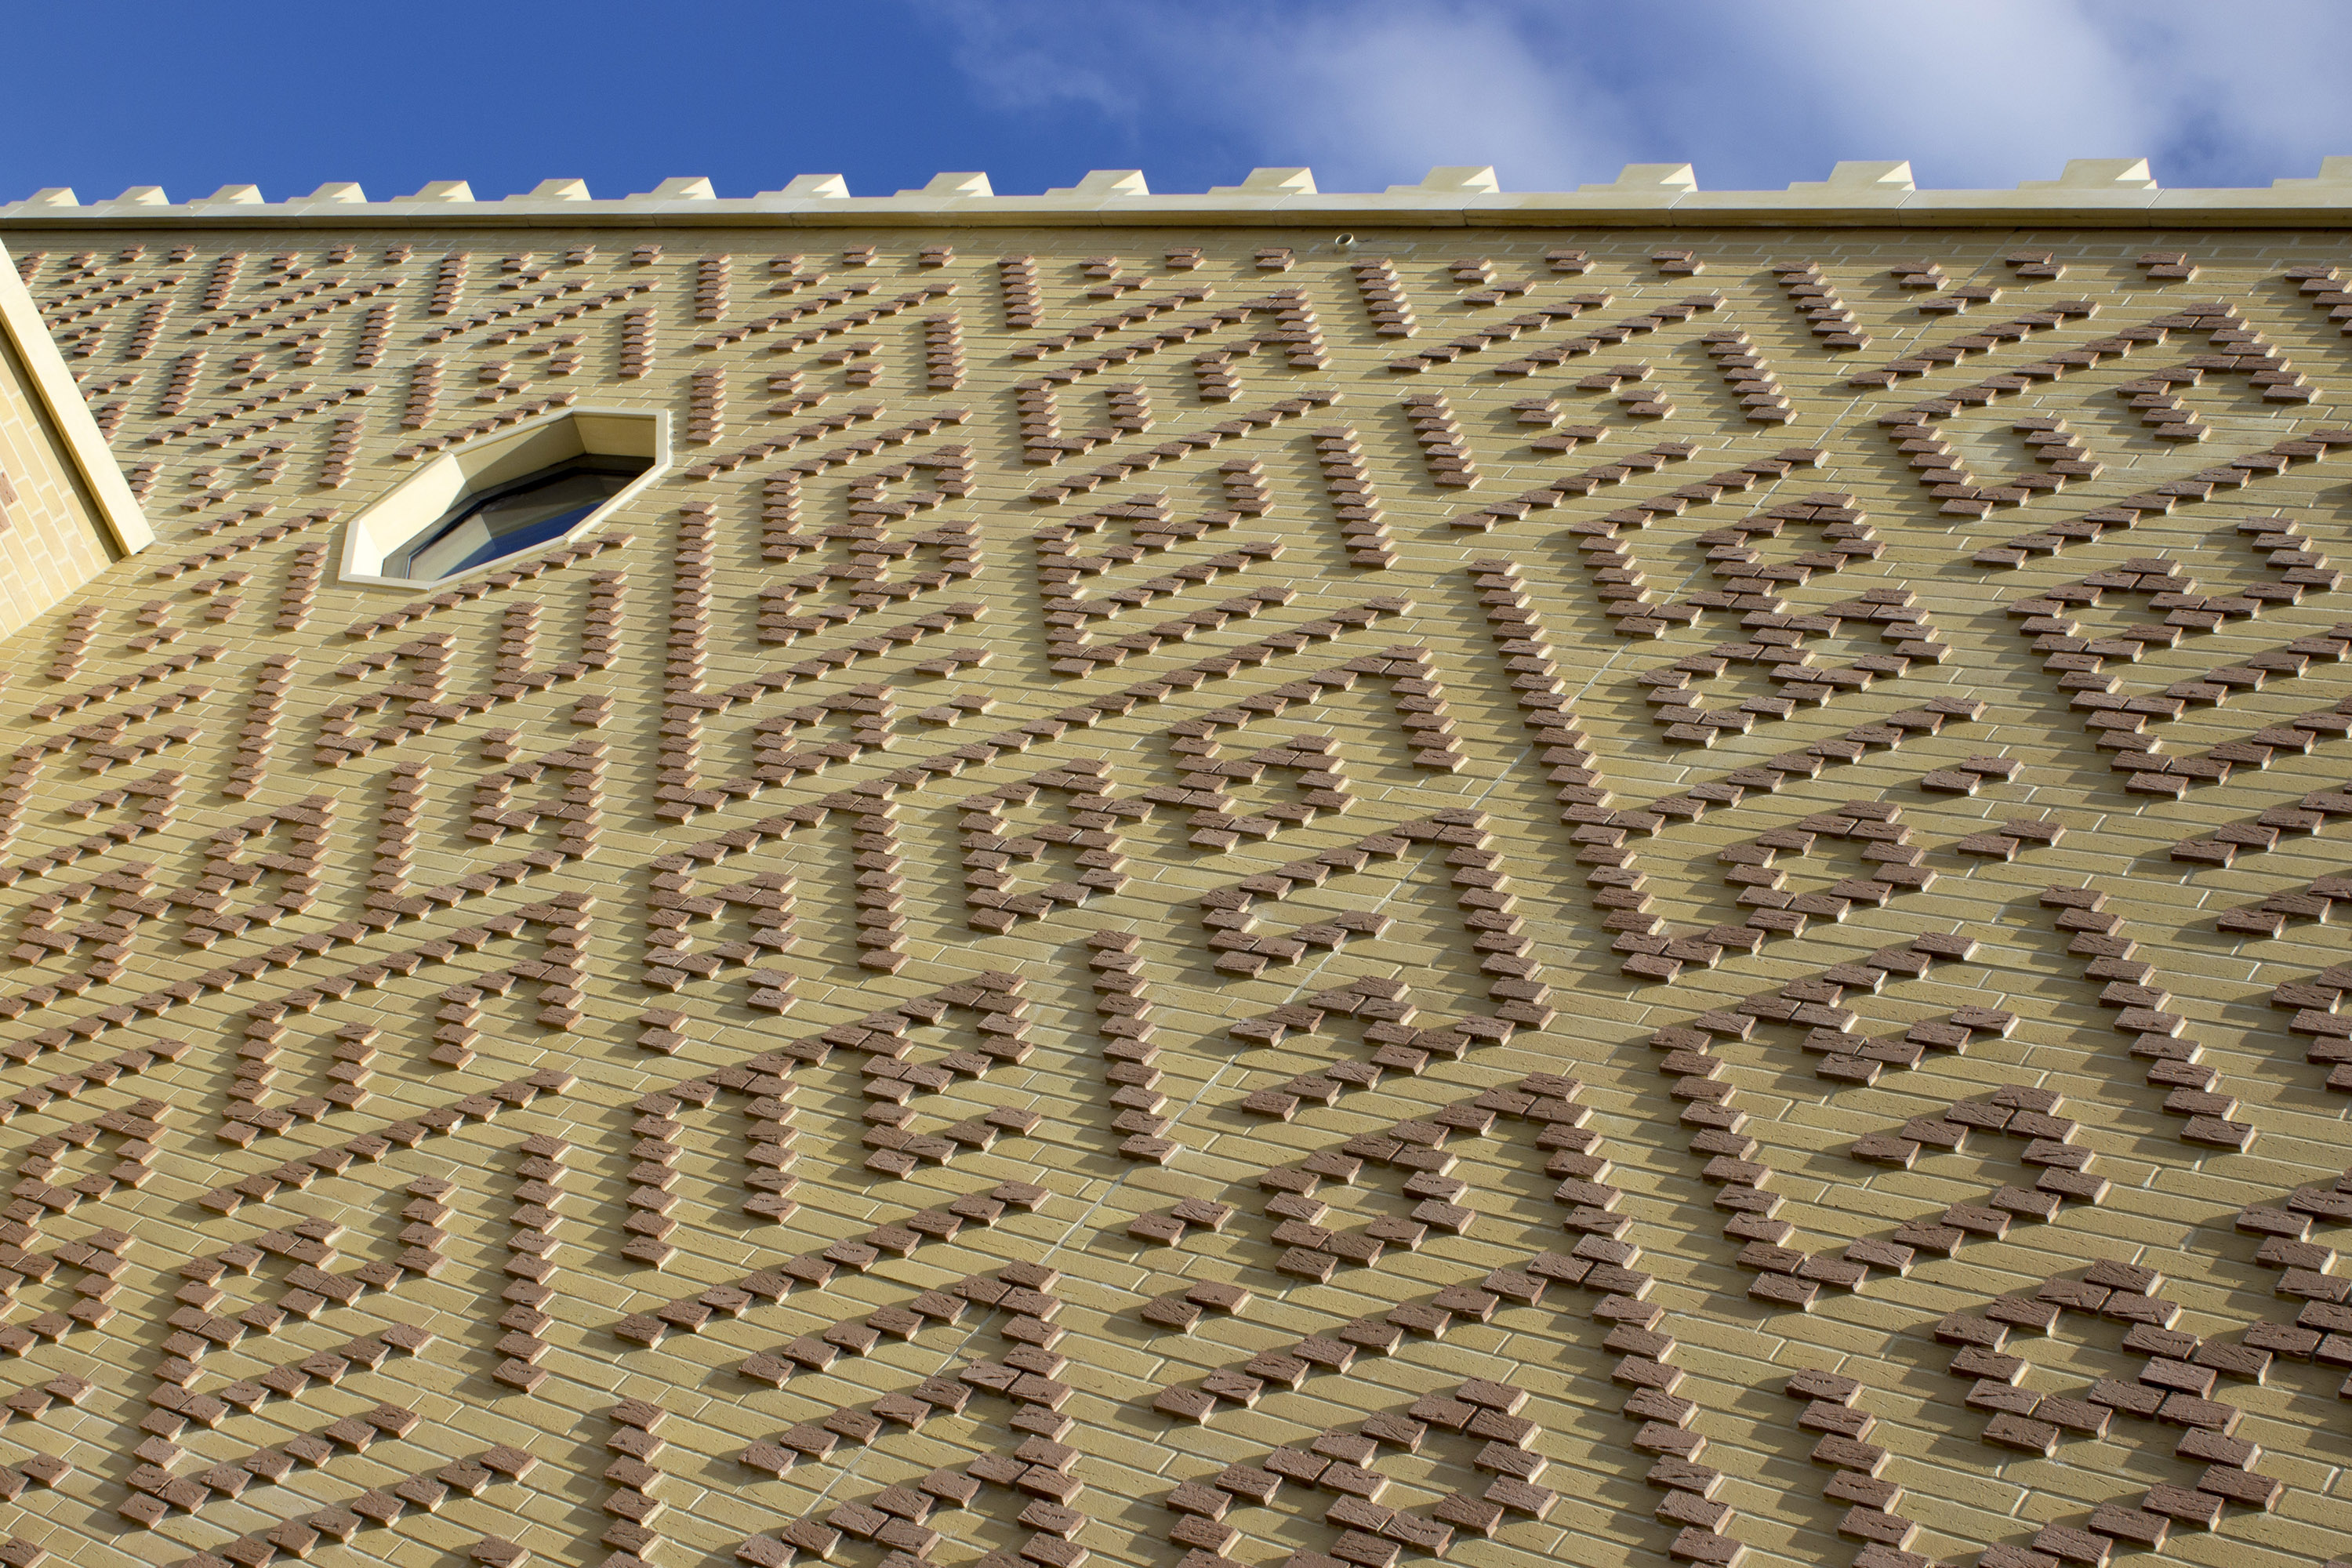 Brick wall pattern. The Cambridge Mosque by Marks Barfield Architects